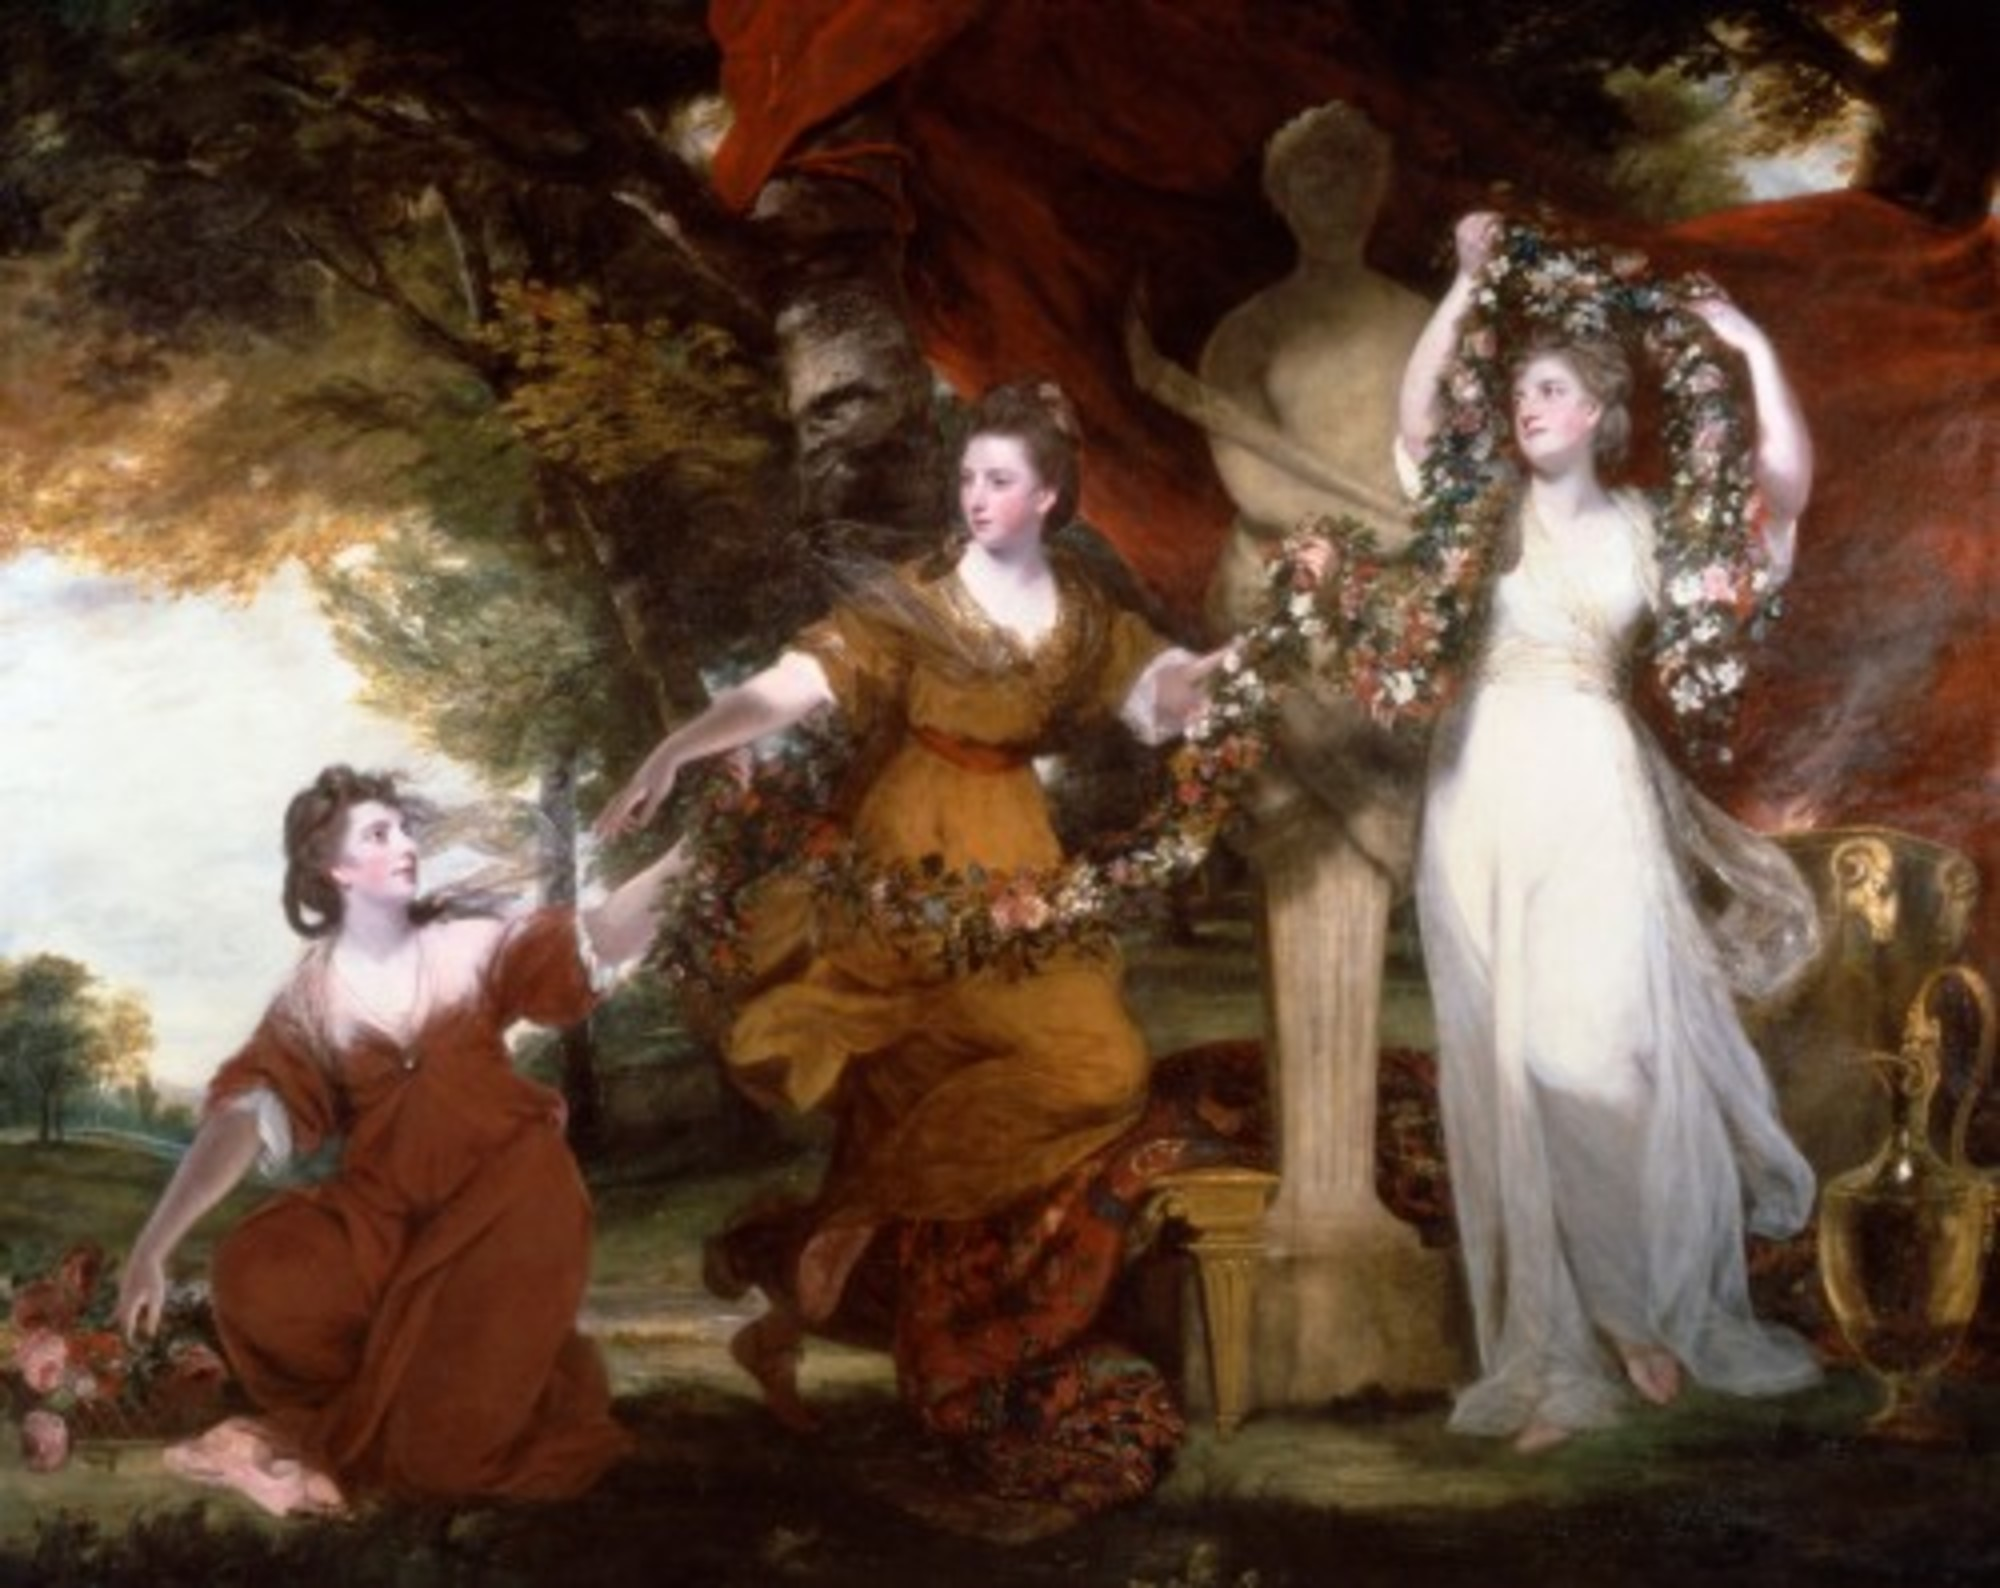 Sir-Joshua-Reynolds---Three-Ladies-Adorning-a-Term-of-Hymen-Tate-Britain.jpg